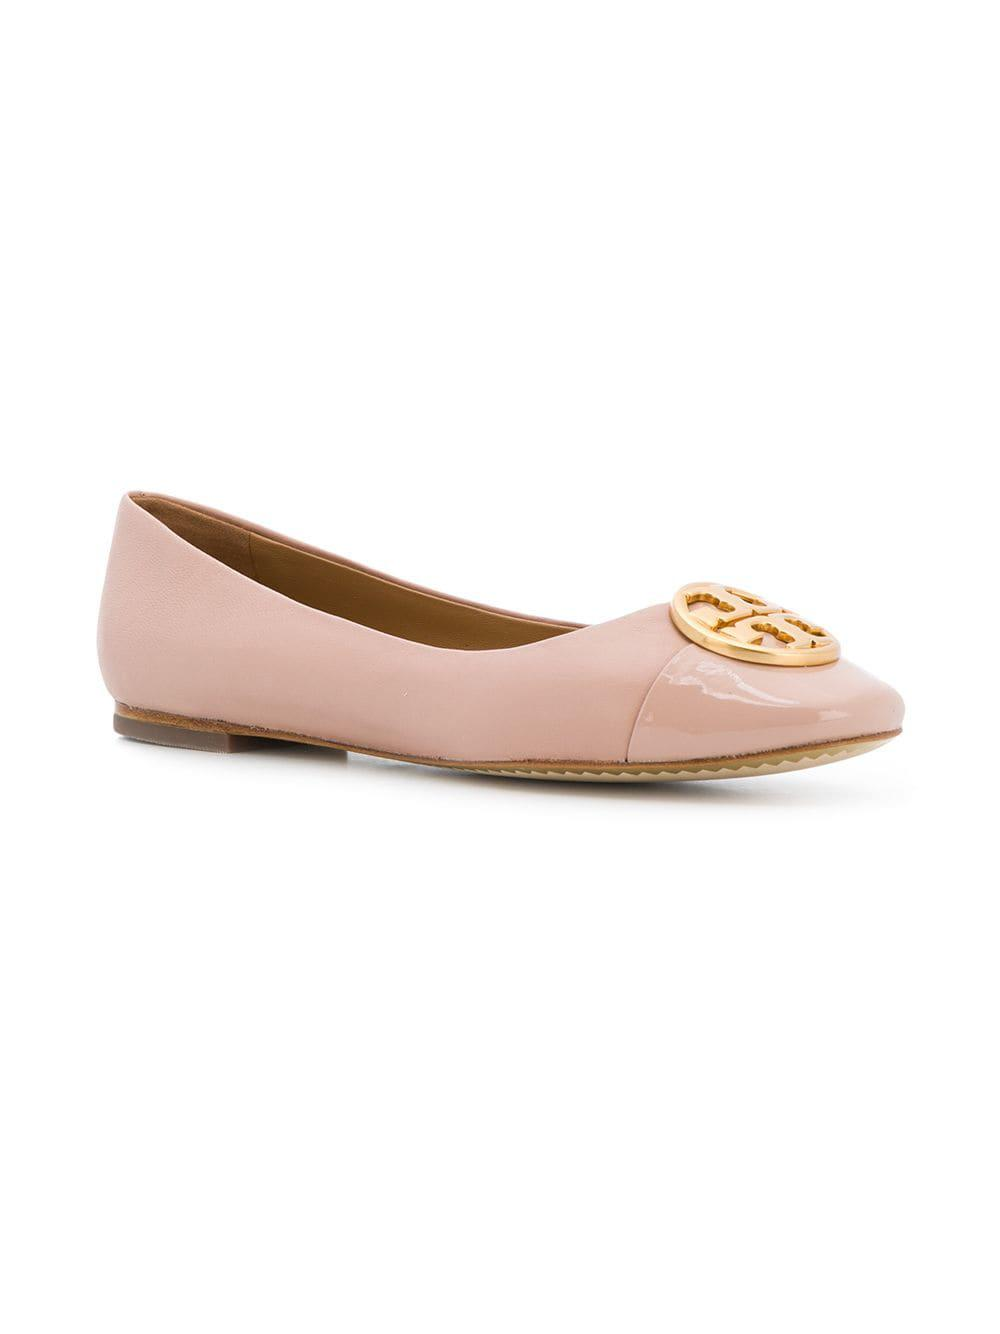 5e1bac2ca63e Lyst - Tory Burch Chelsea Cap Toe Ballet Flats in Pink - Save 51%